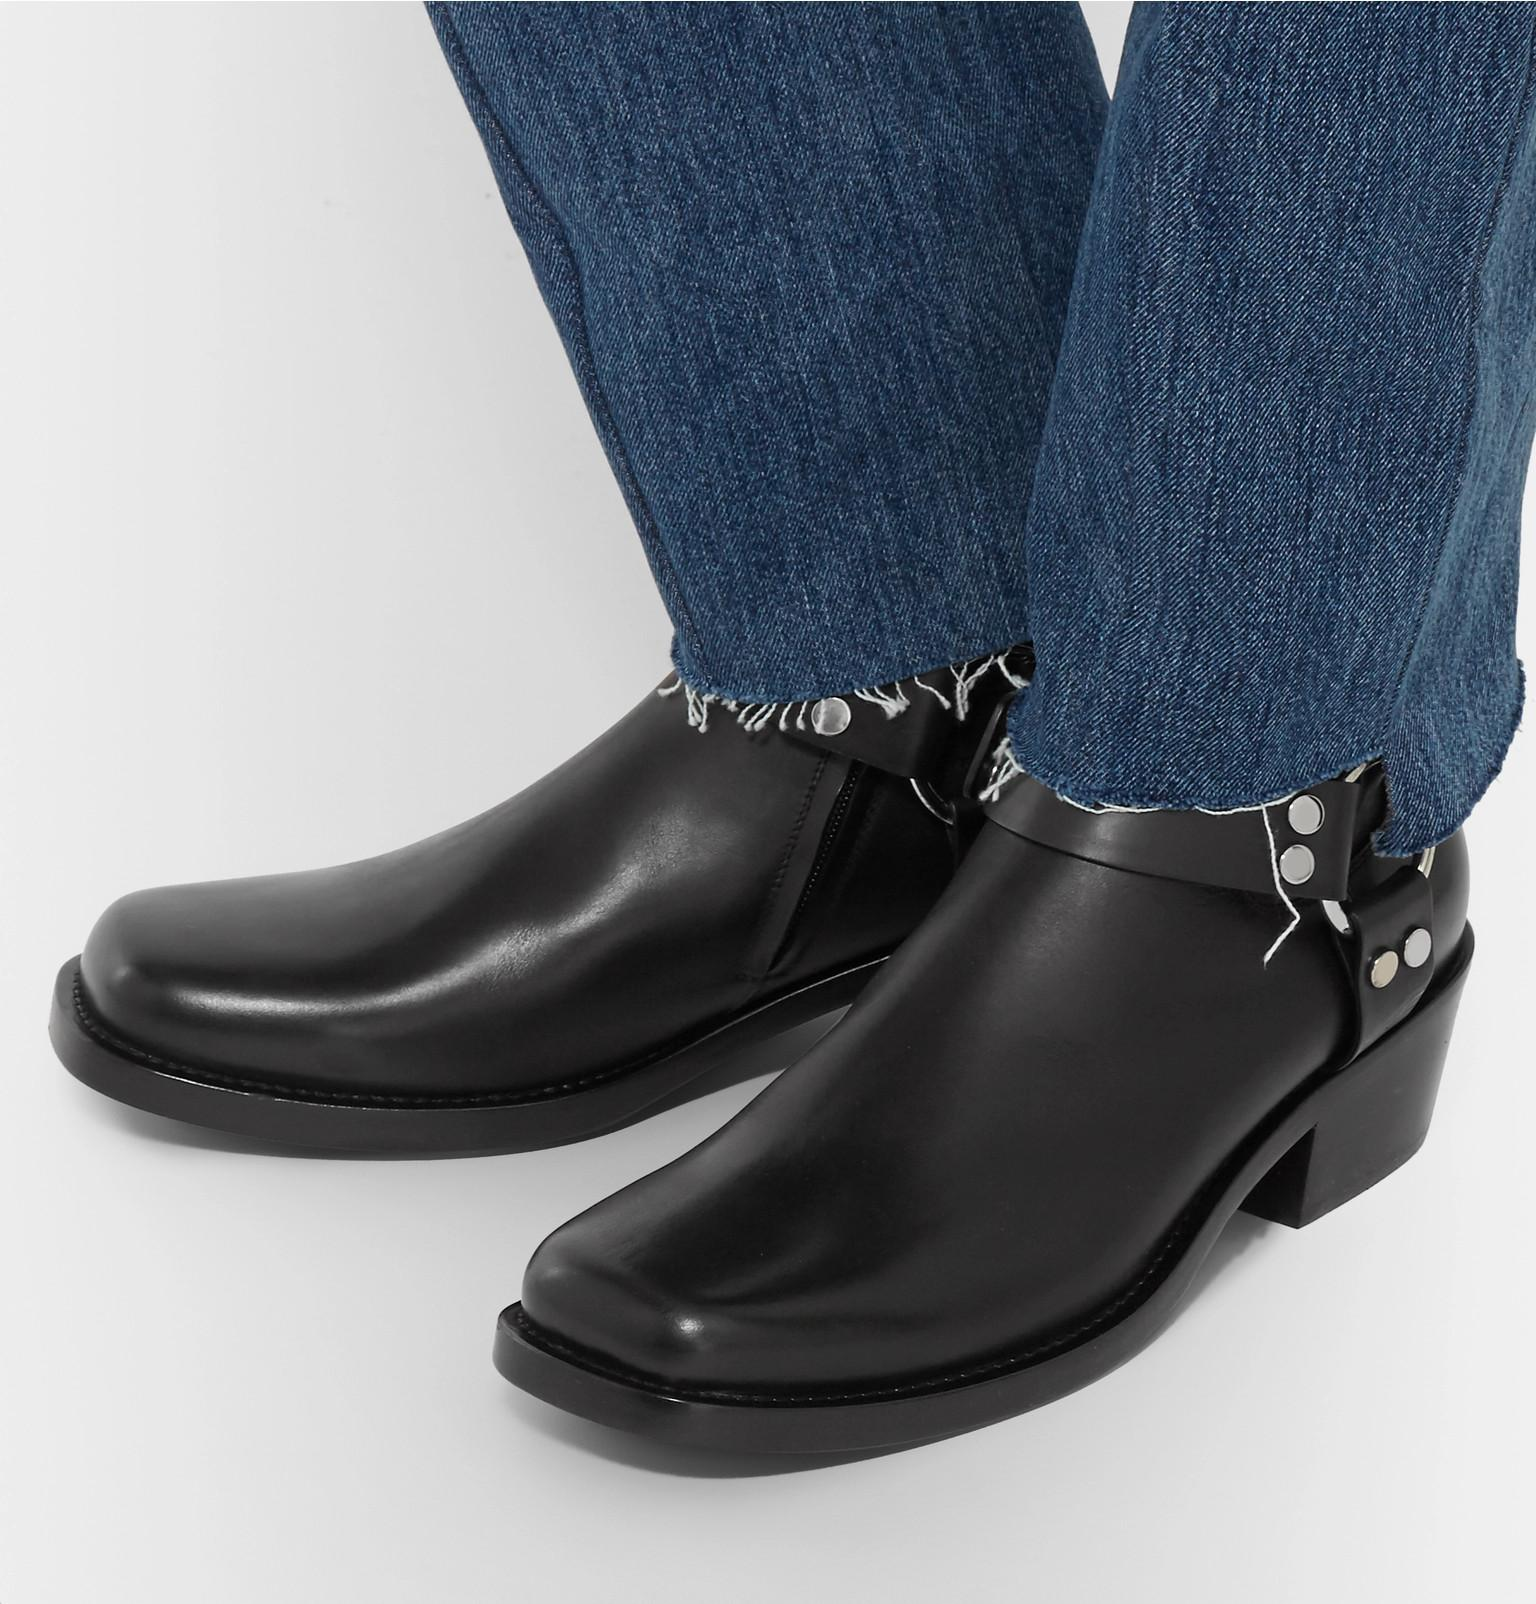 9799a732cd2c Lyst - Balenciaga Leather Harness Boots in Black for Men